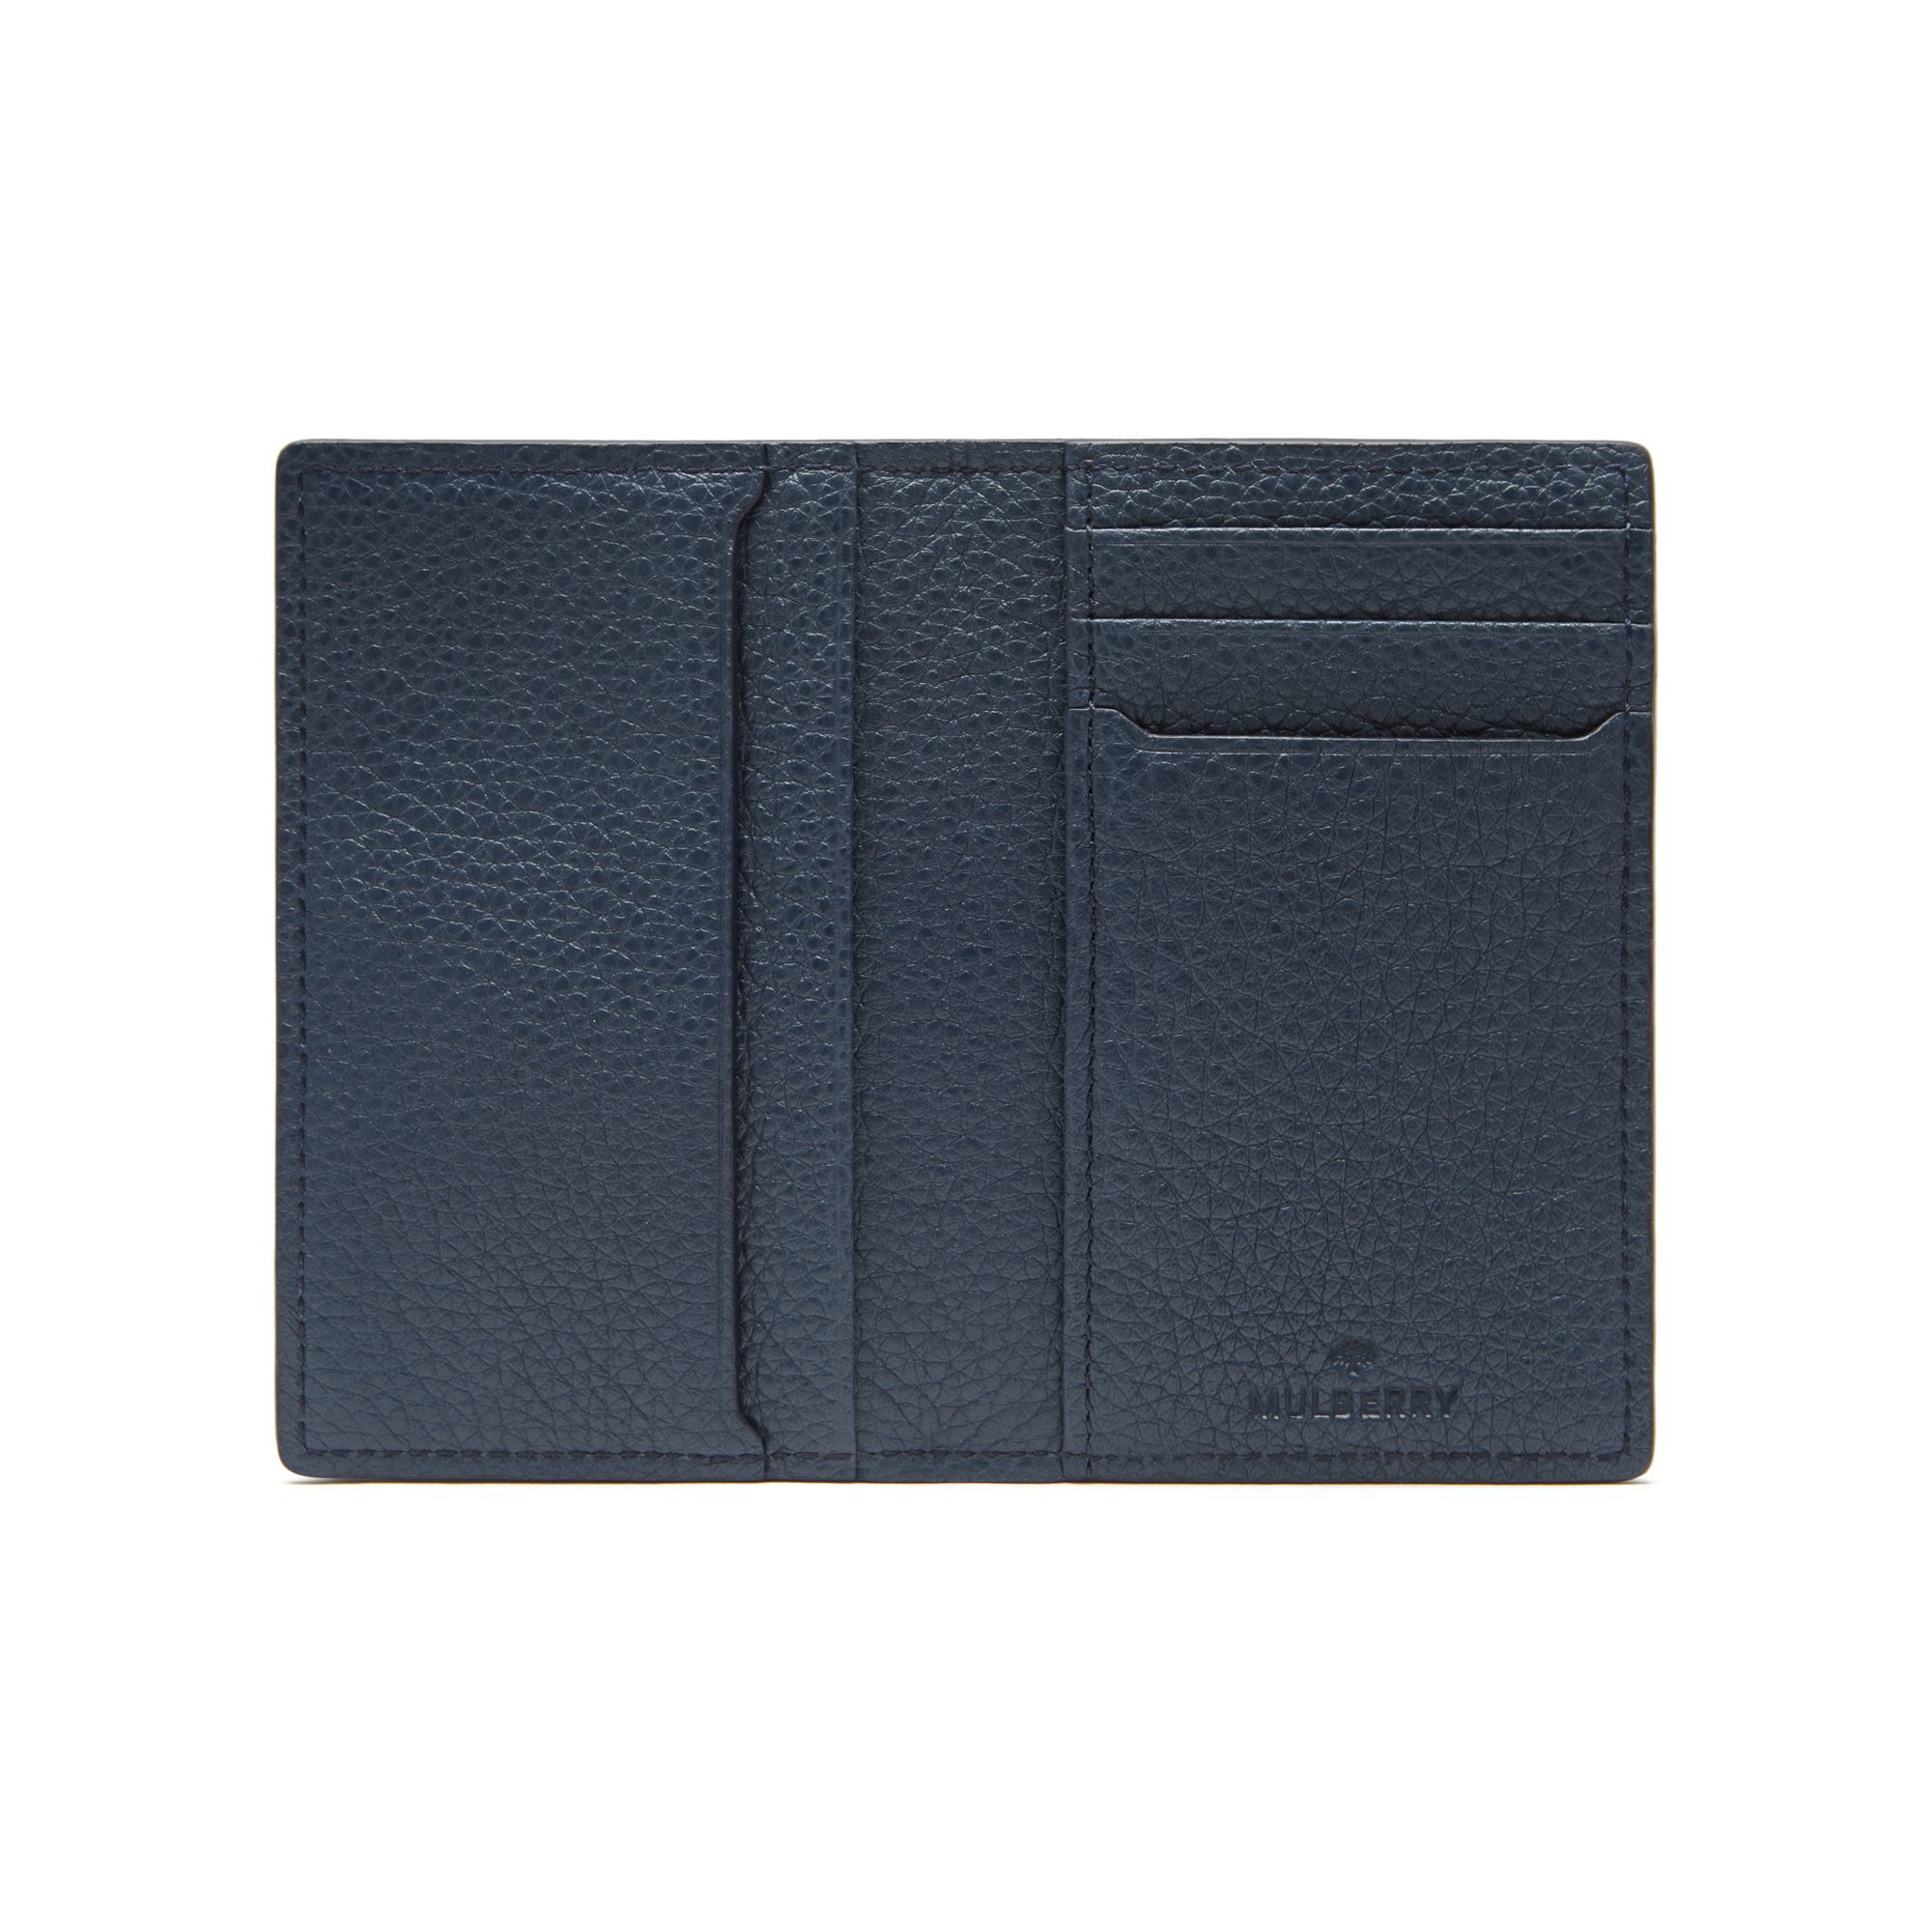 f94336f29224 get mulberry mens mulberry 8 card coin wallet reebonz ed4df e8101  discount lyst  mulberry card wallet in blue for men 0a4dd 39f17